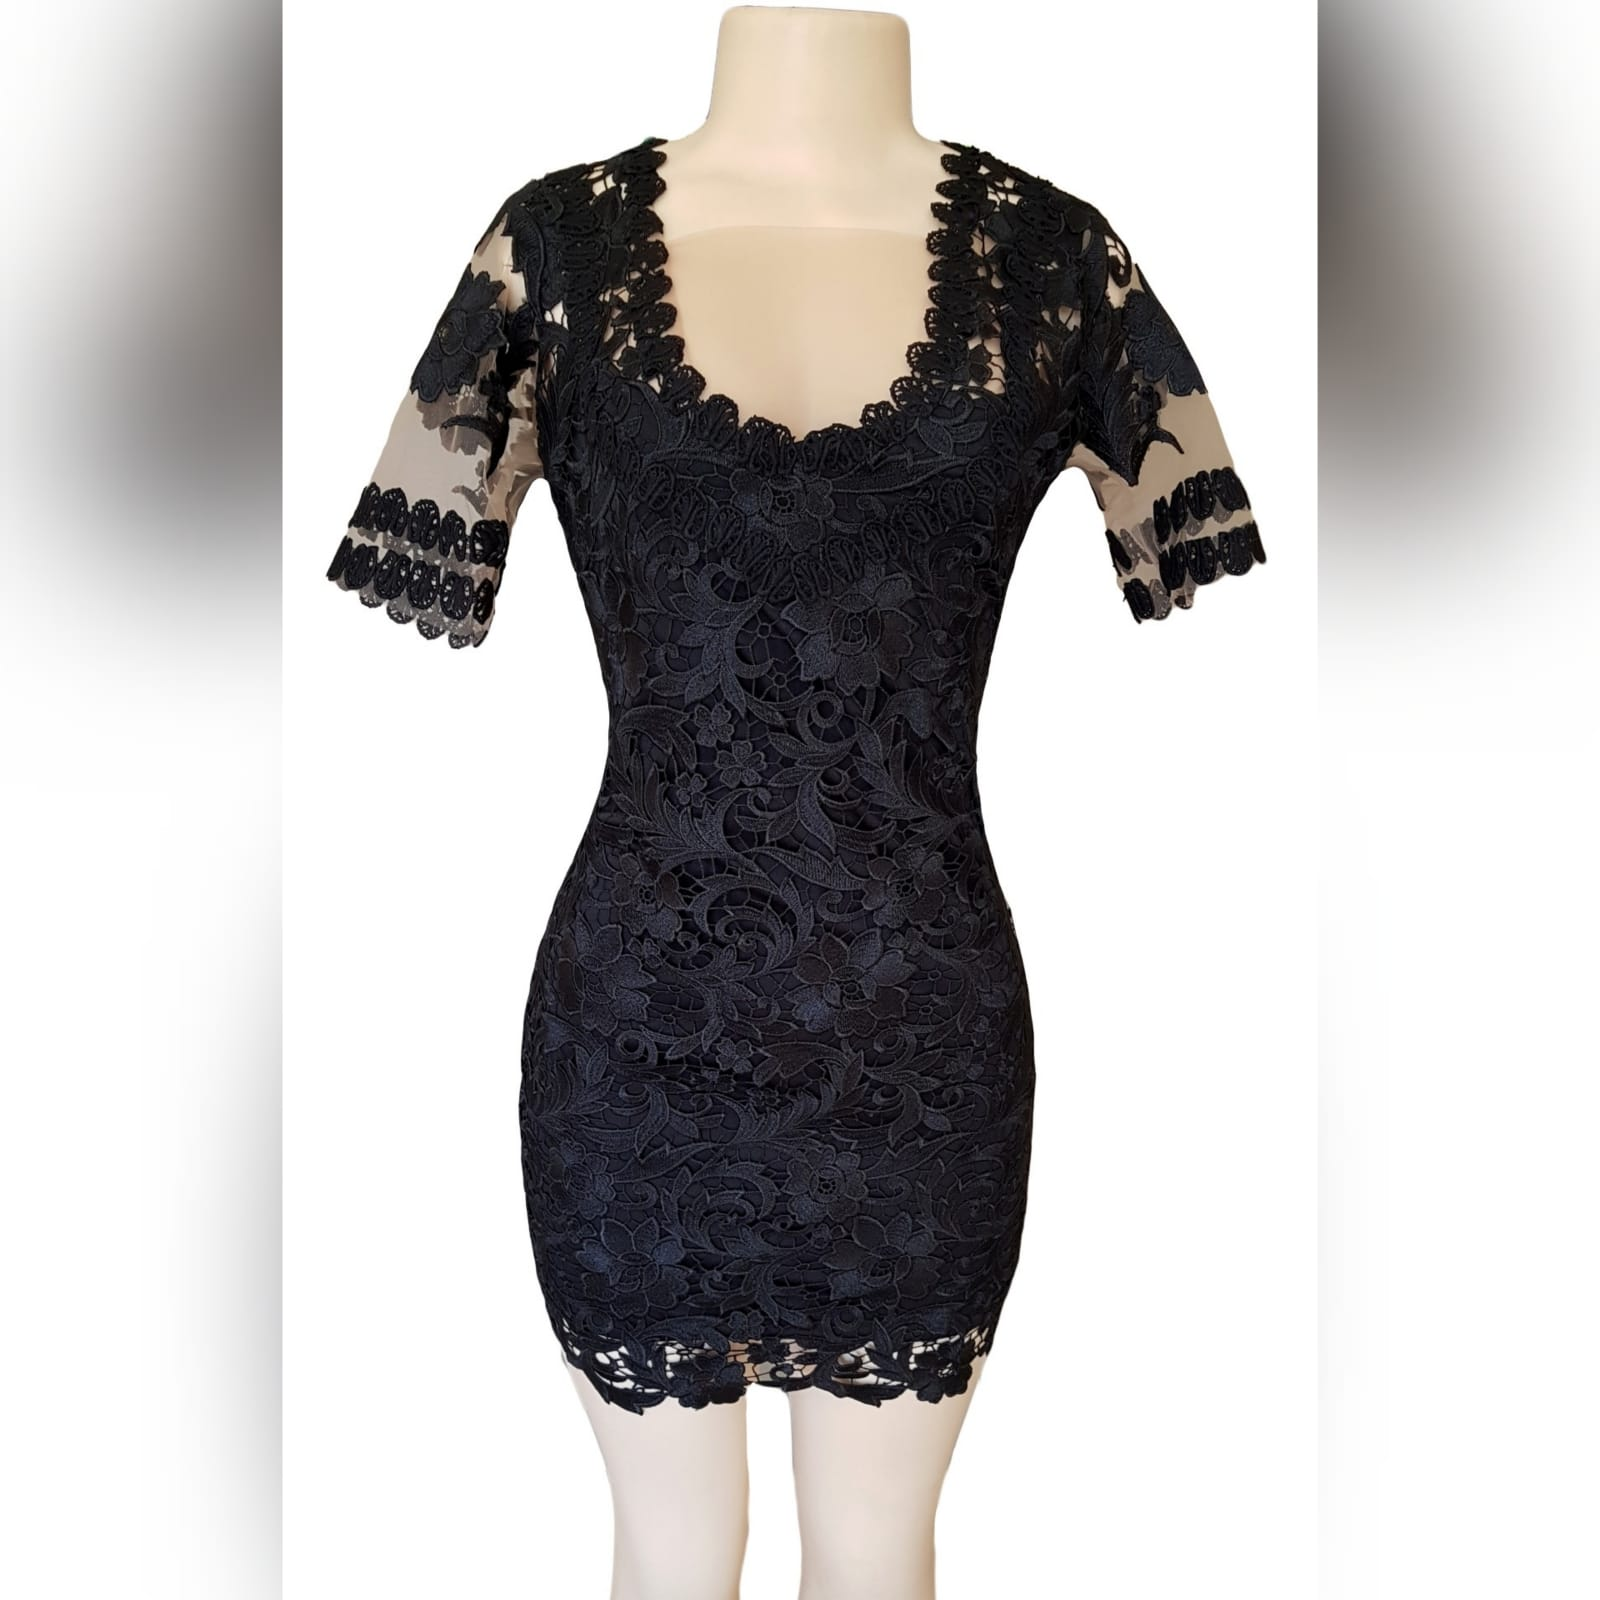 Black short guipure lace evening dress 1 black short guipure lace evening dress with a rounded front and back neckline. With sheers short sleeves detailed with lace.